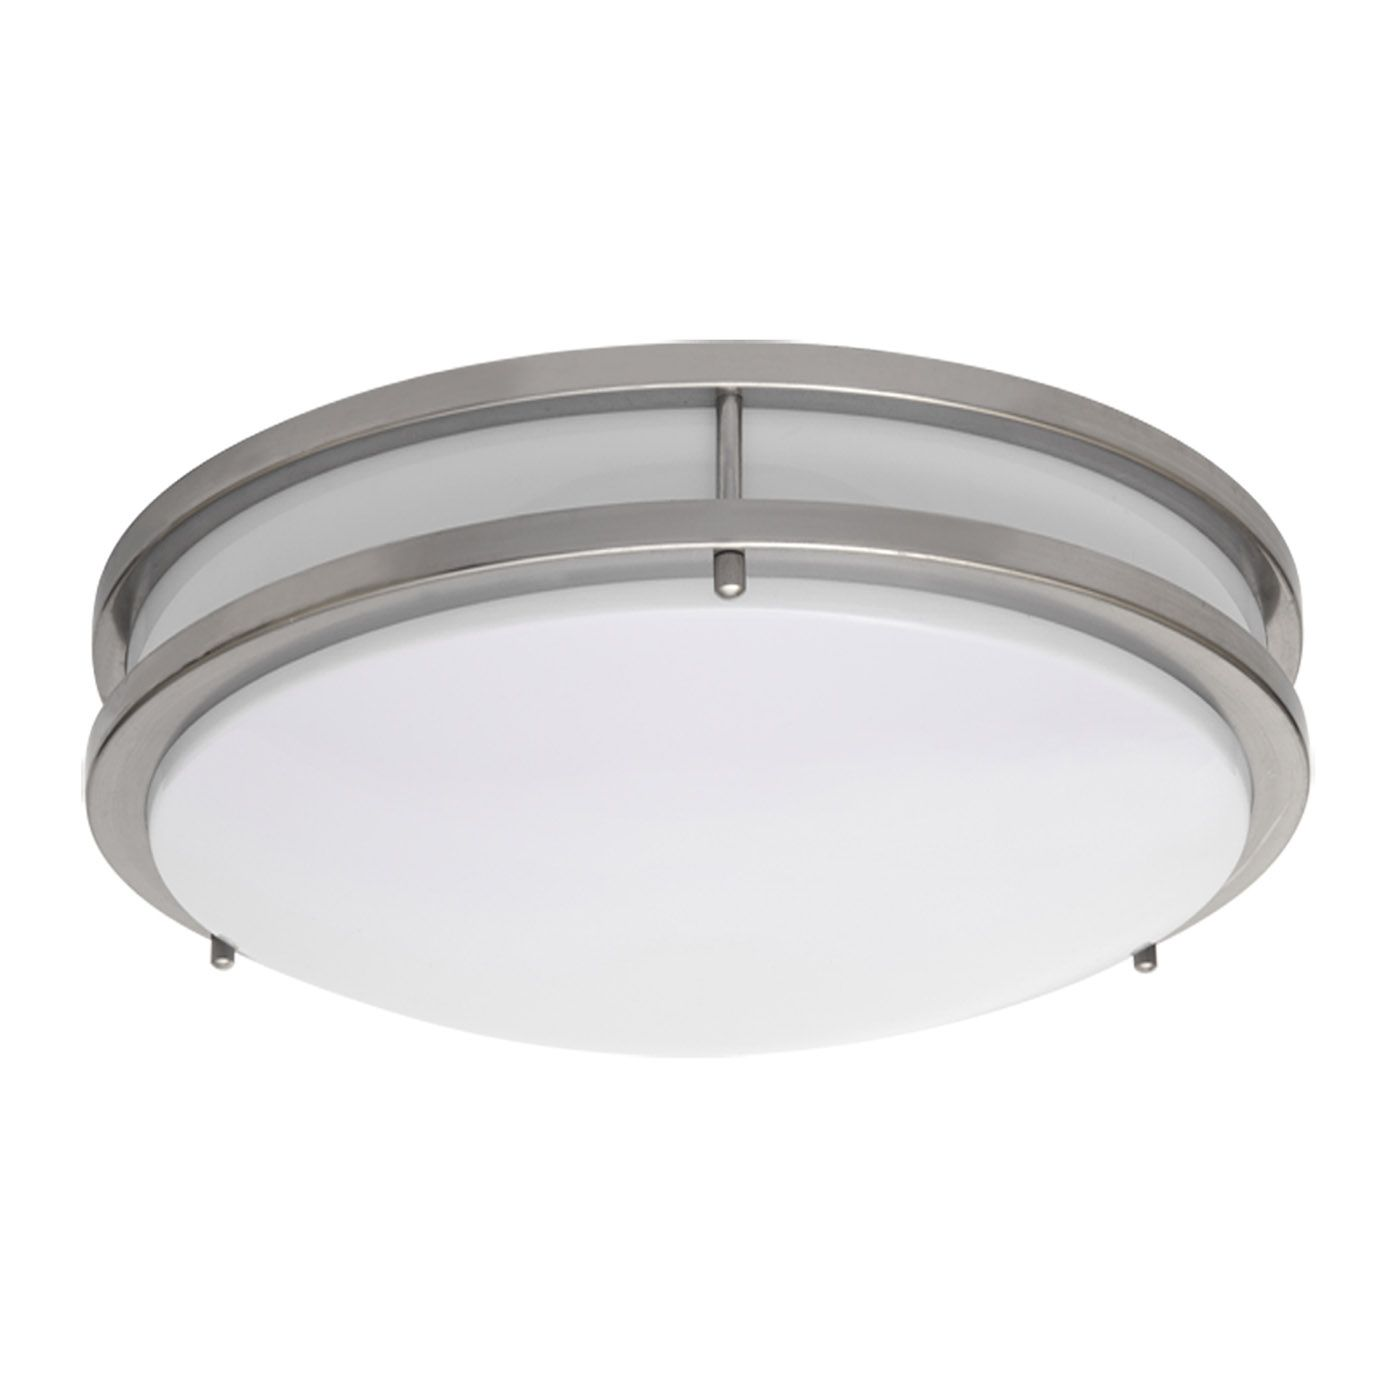 Amax lighting led ceiling fixtures led jr00 led two ring flush mount amax lighting led ceiling fixtures led jr00 led two ring flush mount ceiling fixture arubaitofo Image collections